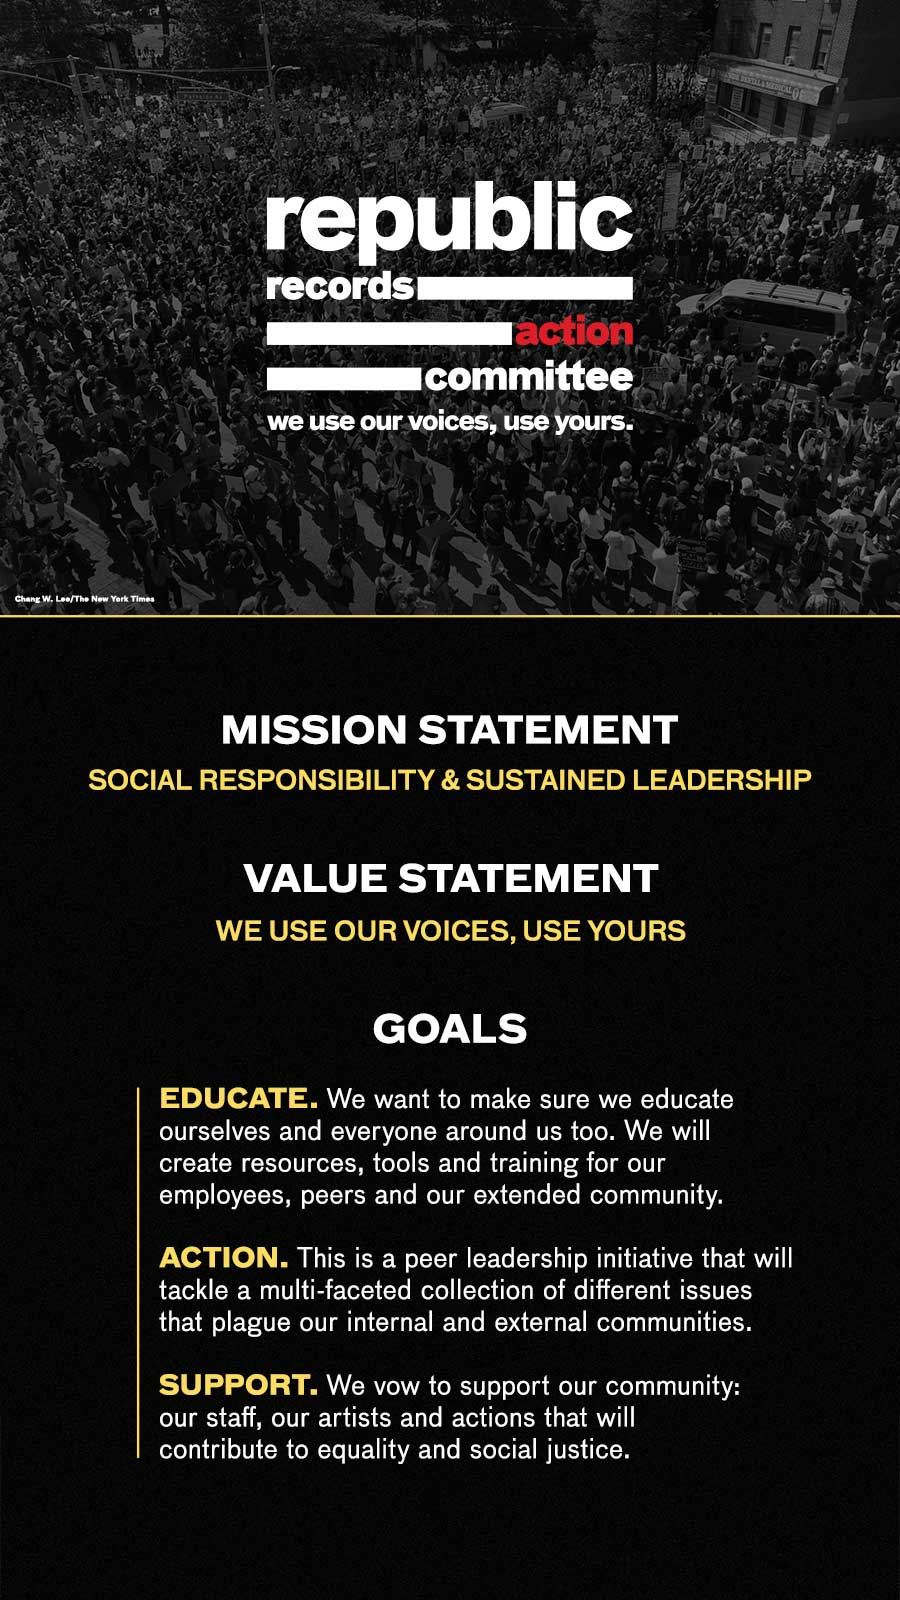 Mission Statement: Social Responsibility & Sustained Leadership. Value Statement: We use our voices, use yours. Goals: Educate. We want to make sure we educate ourselves and everyone around us too. We will create resources, tools, and training for our employees, peers, and our extended community. Action. This is a peer leadership initiative that will tackle a multi-faceted collection of different issues that plague our internal and external communties. Support. We vow to support our community: our staff, our artists, and actions that will contribute to equality and social justice.